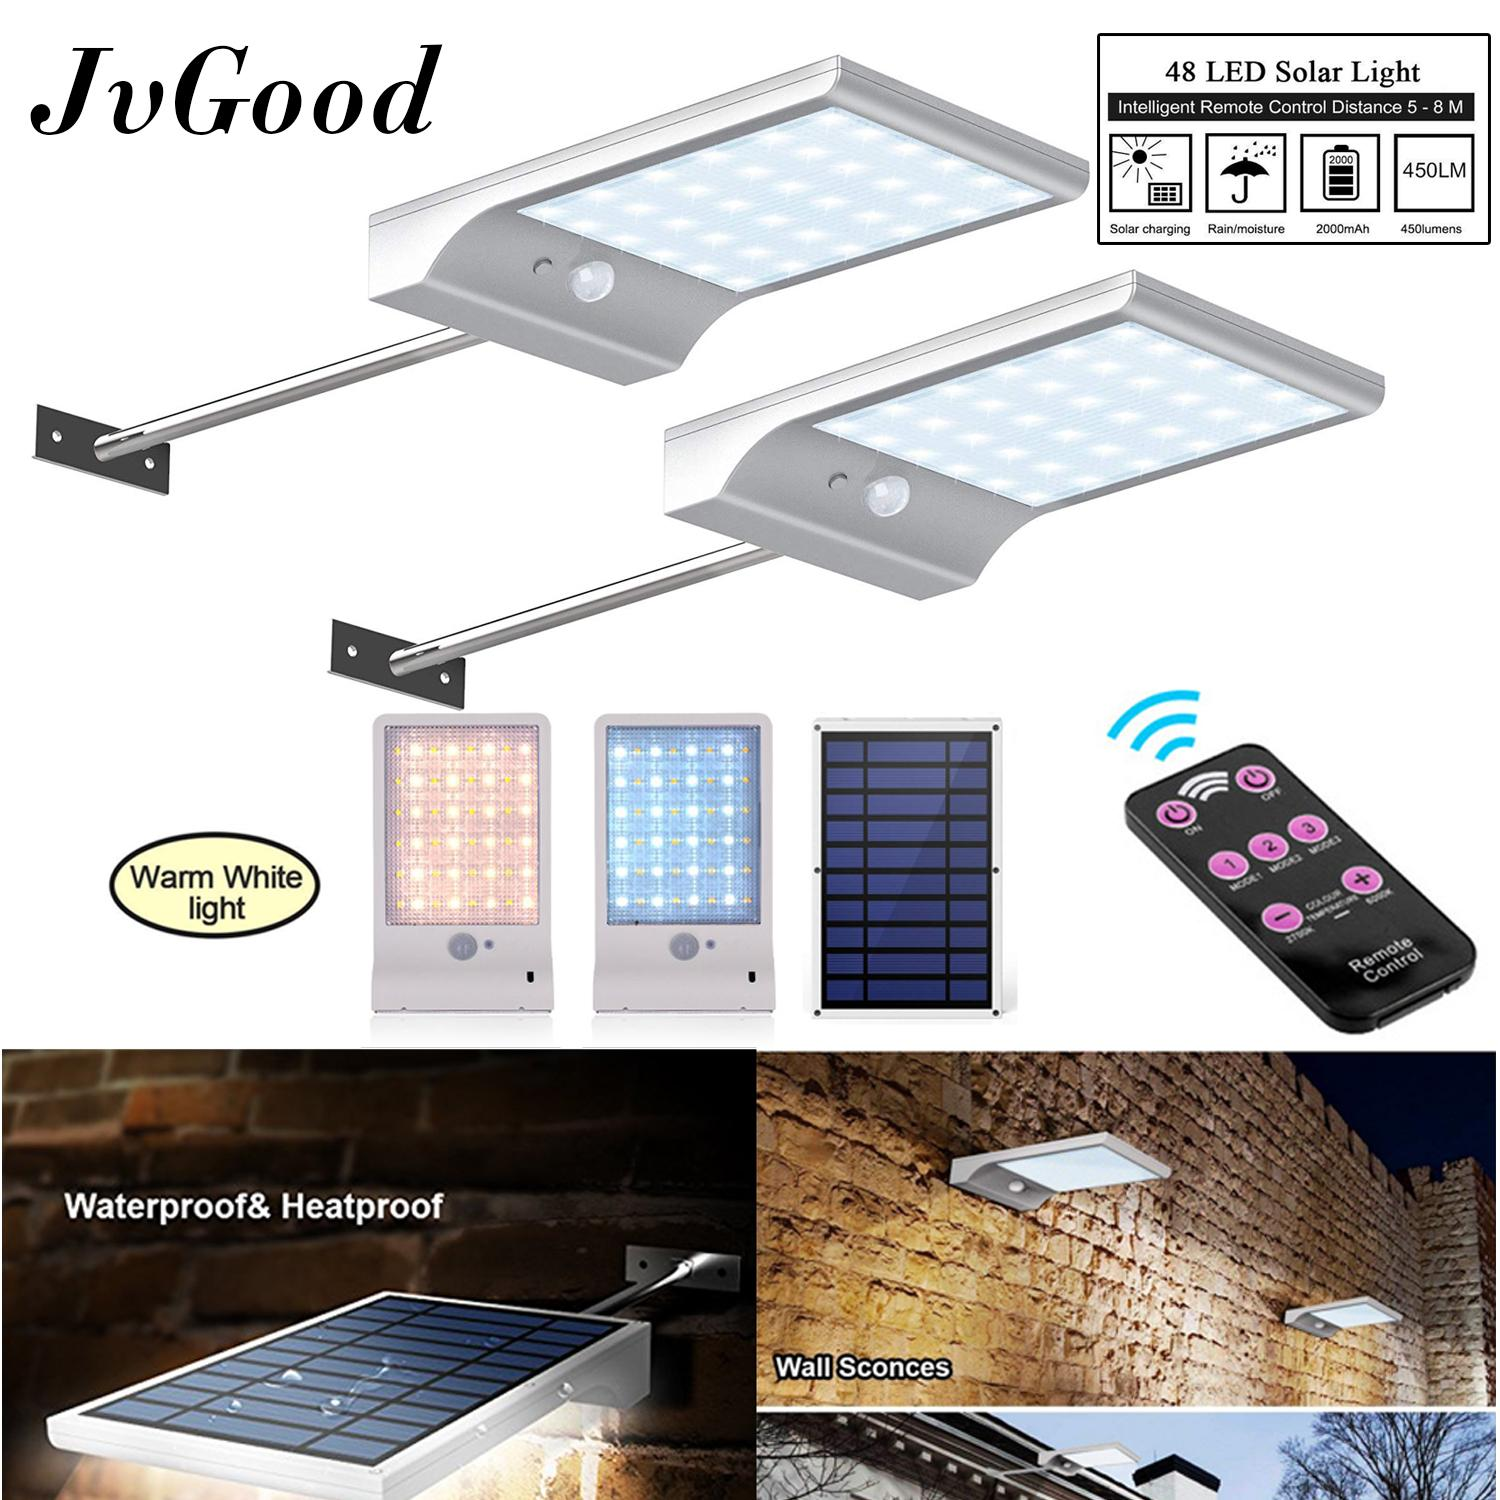 Lights For Sale Lighting Prices Brands Review In Philippines Cordless Ceiling Wall Light With Remote Control Switch Battery